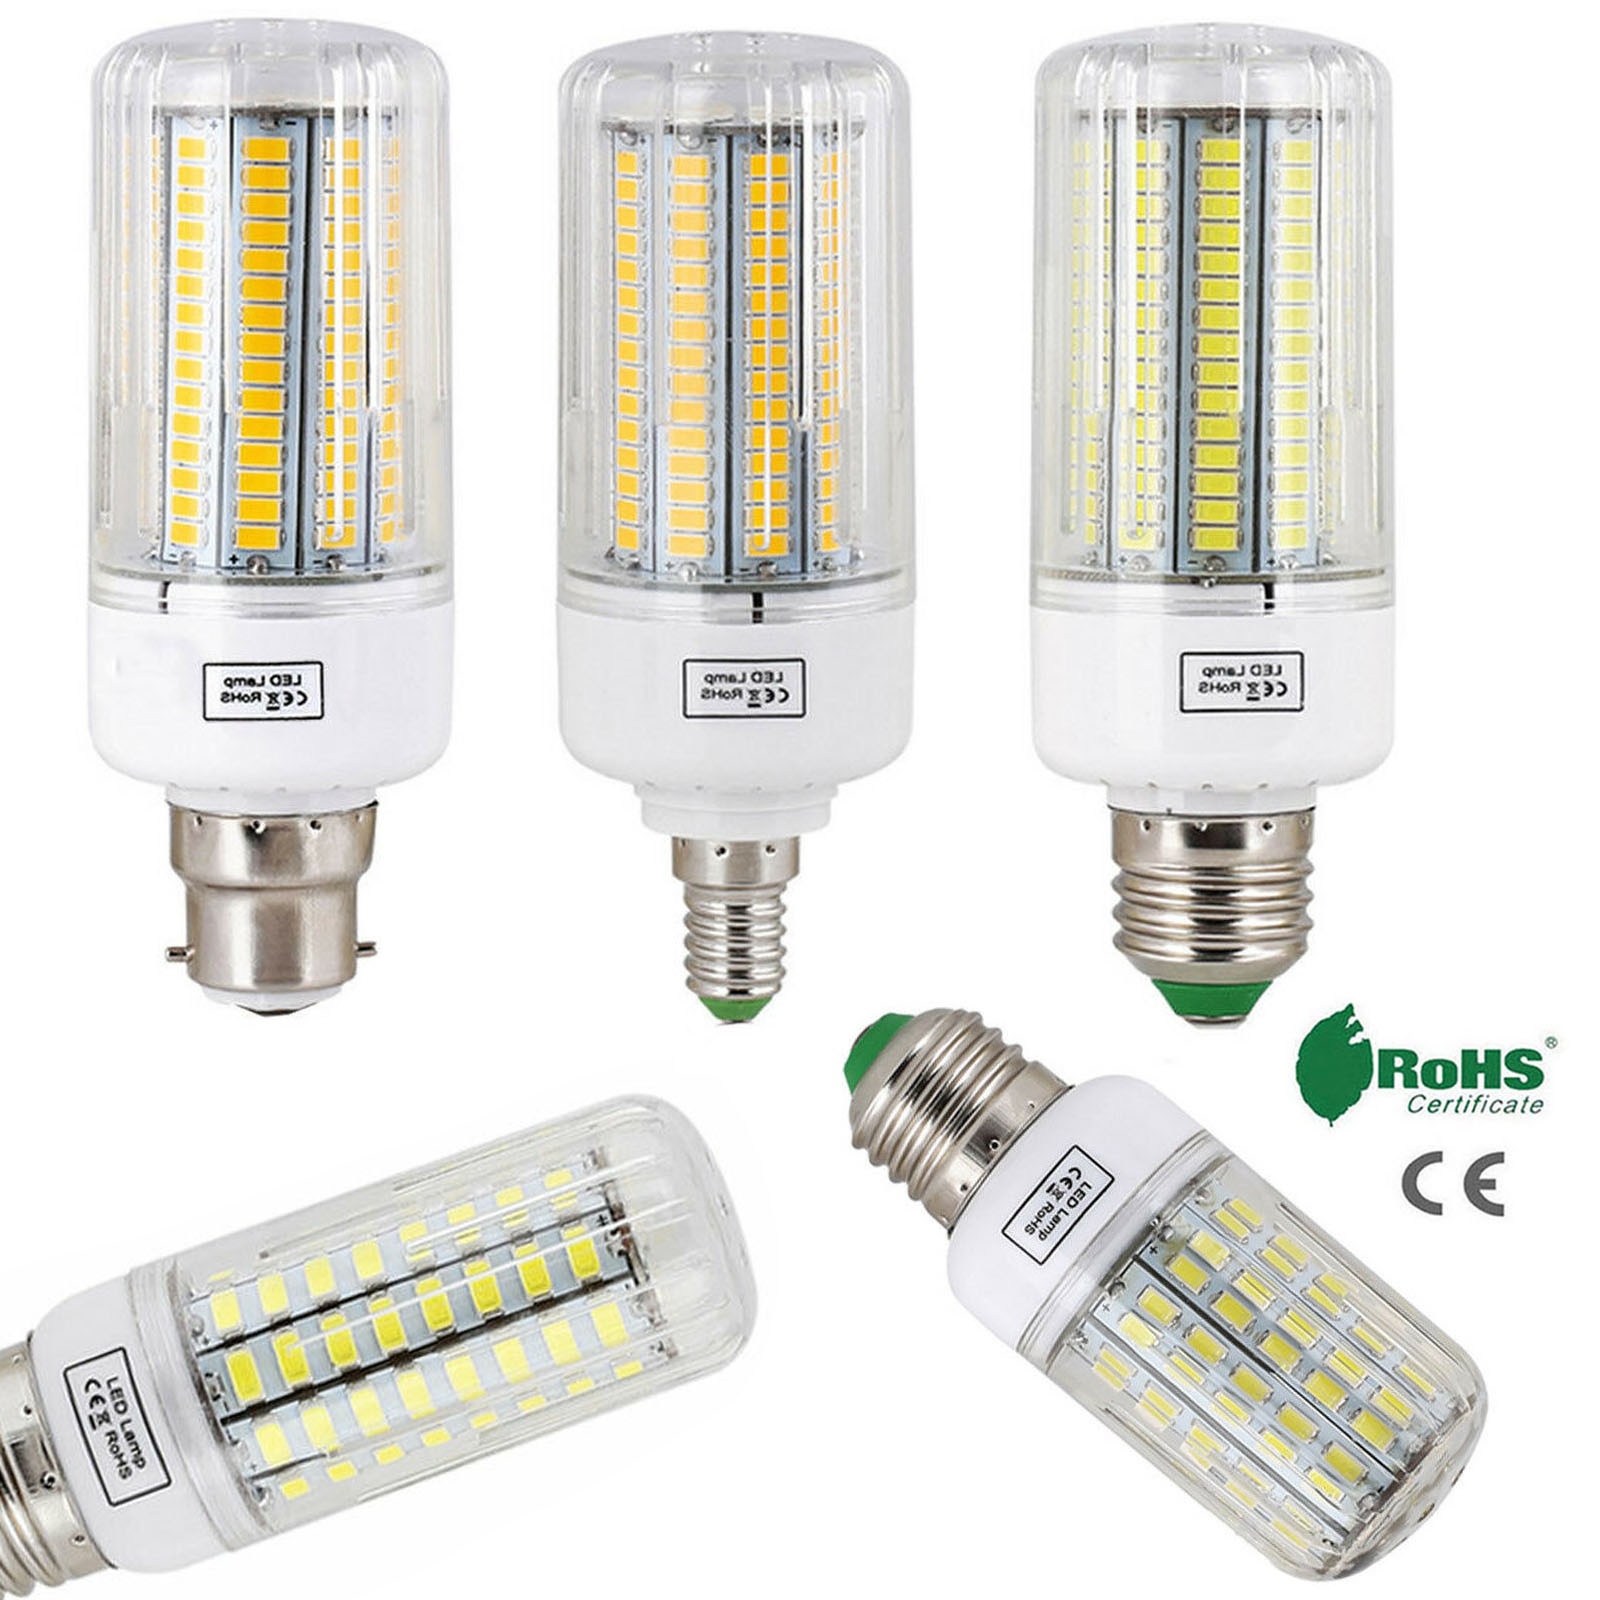 LED Bulbs E27 Corn Light B22 E14 5730 SMD 24LEDs - 165LEDs 110V 220V Chandelier Candle LED Light For Home Decoration Ampoule YZ